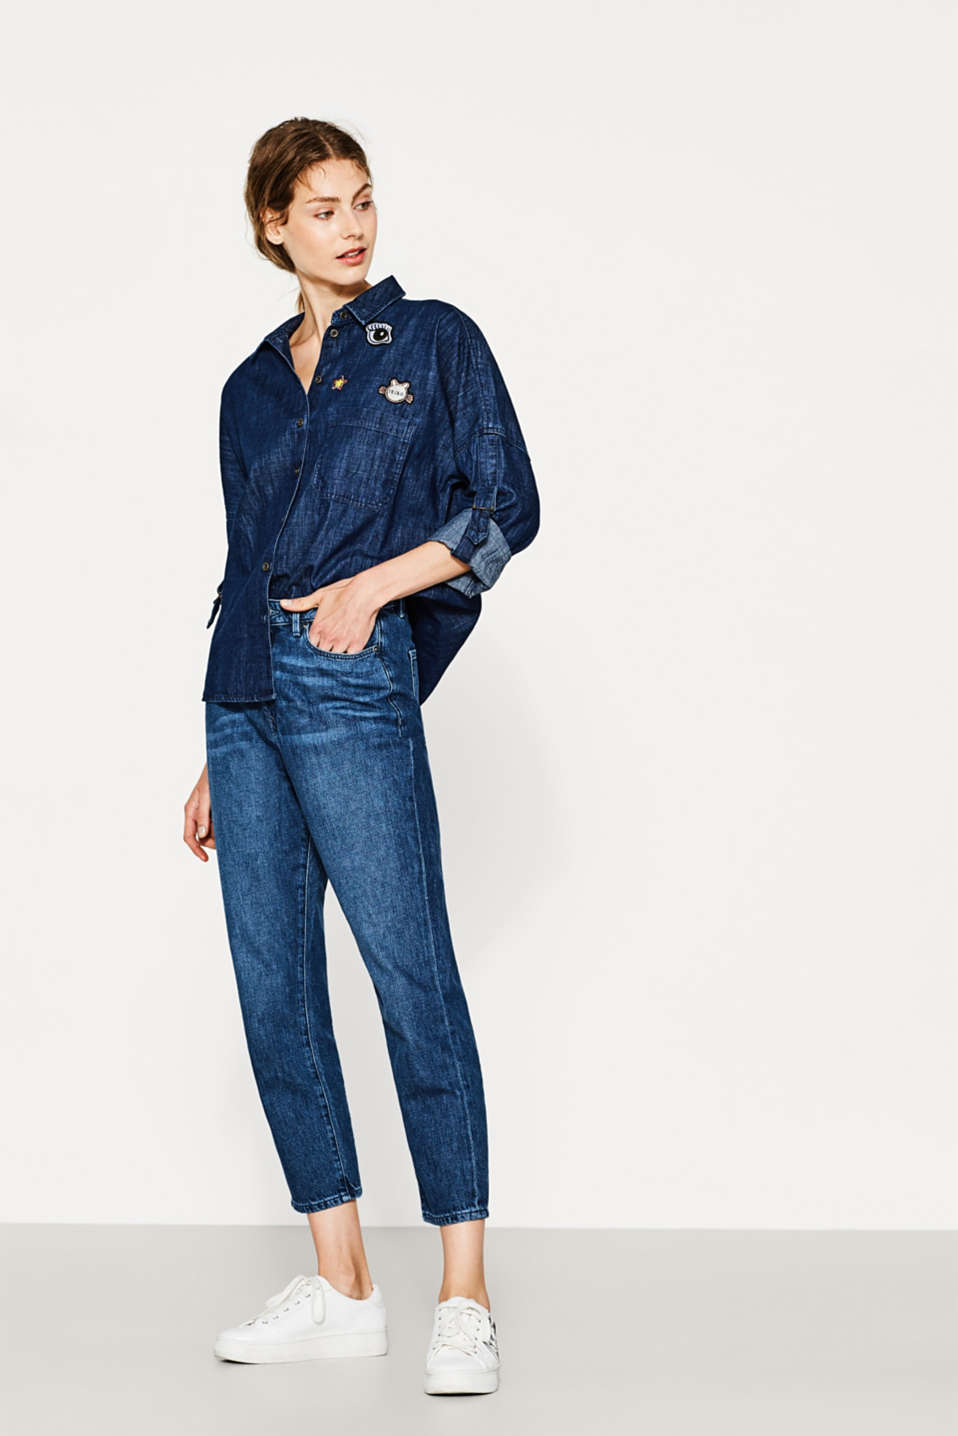 Blusa squadrata in denim, cotone